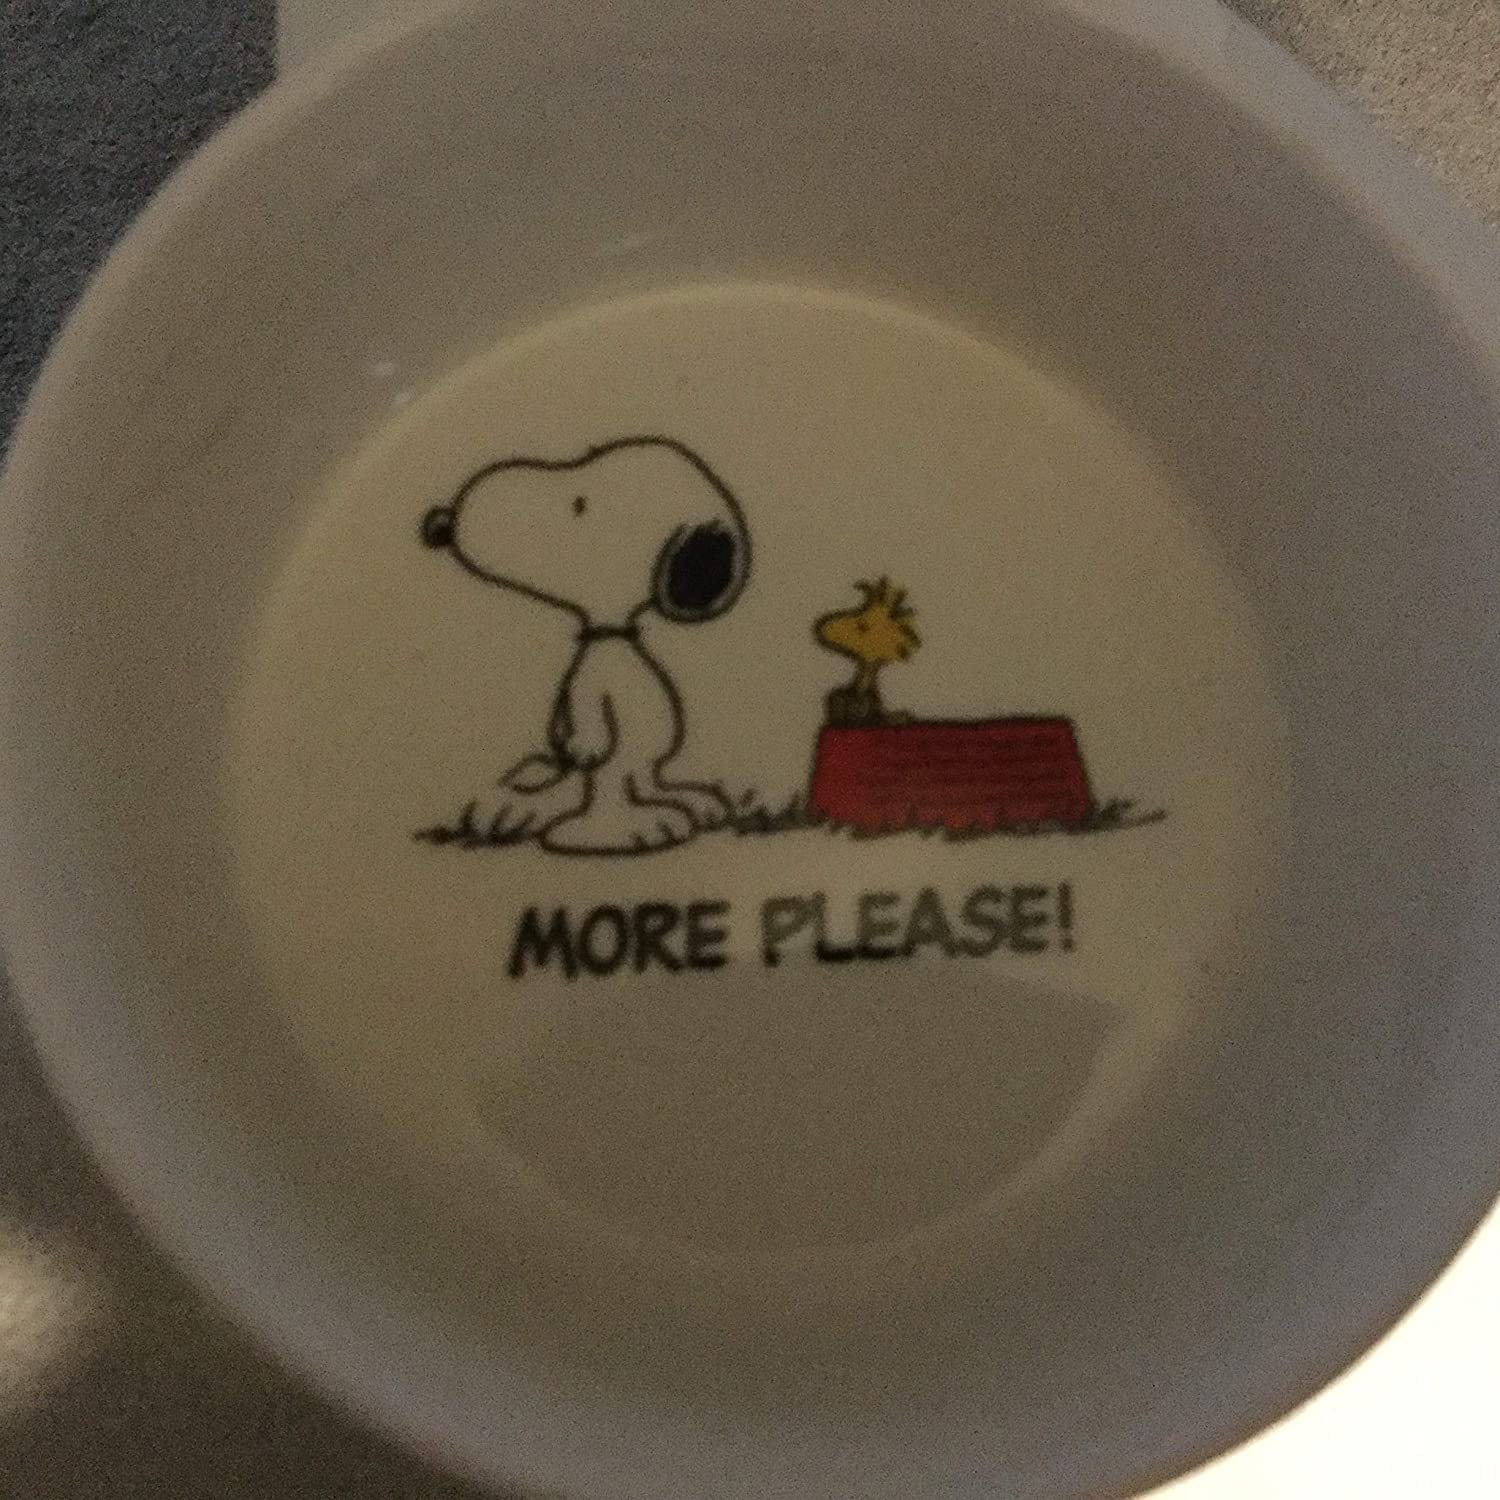 More Please, Now What? Food/Water Bowl, Dog Bowl, Snoopy Bowl